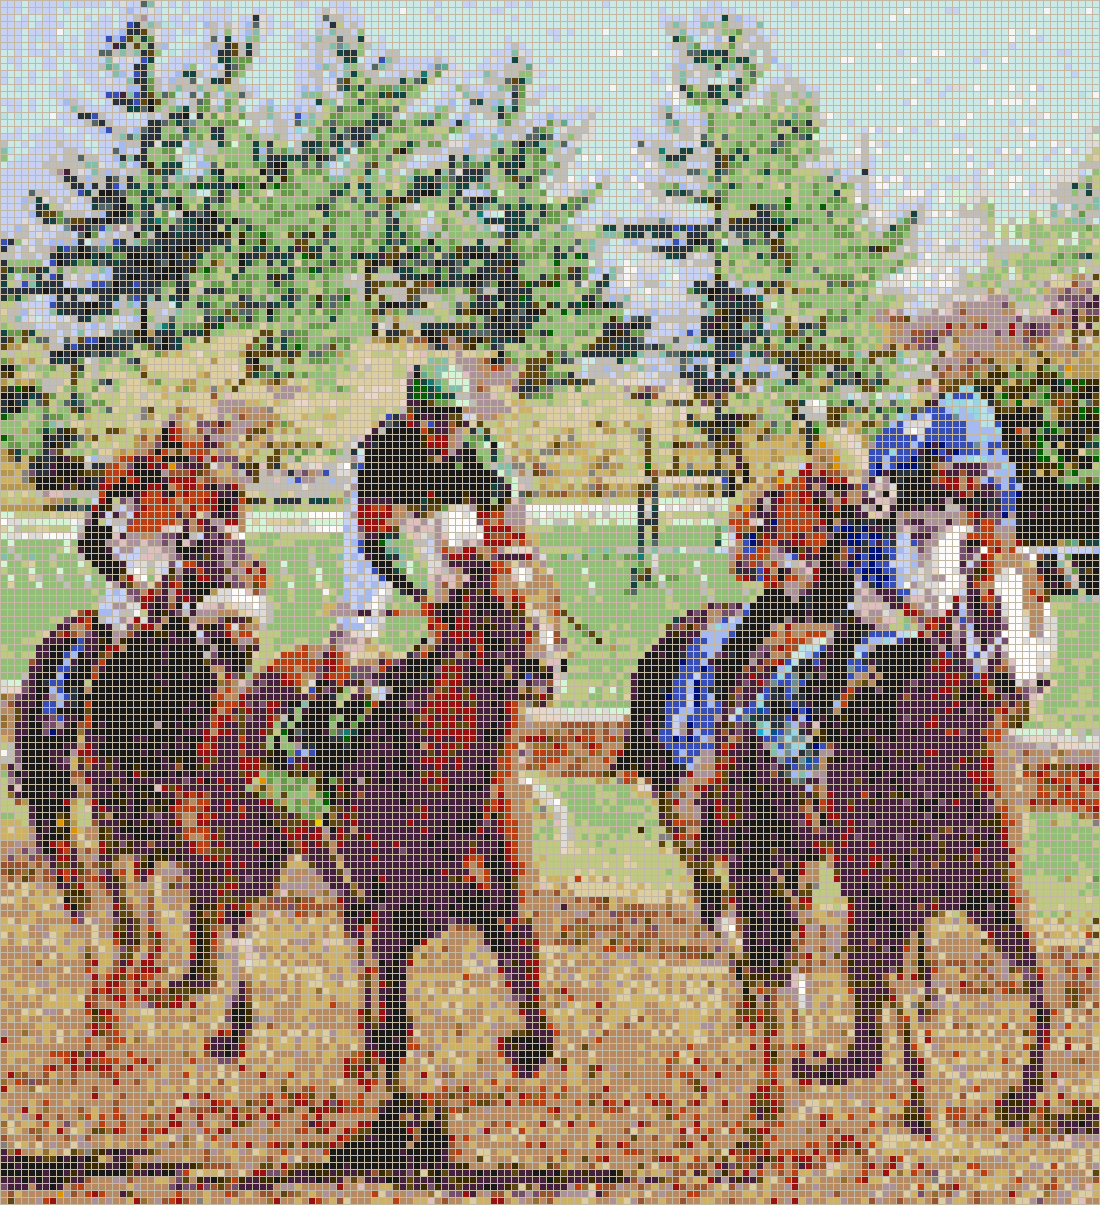 Horse Racing (Keeneland Race Track) - Mosaic Tile Picture Art